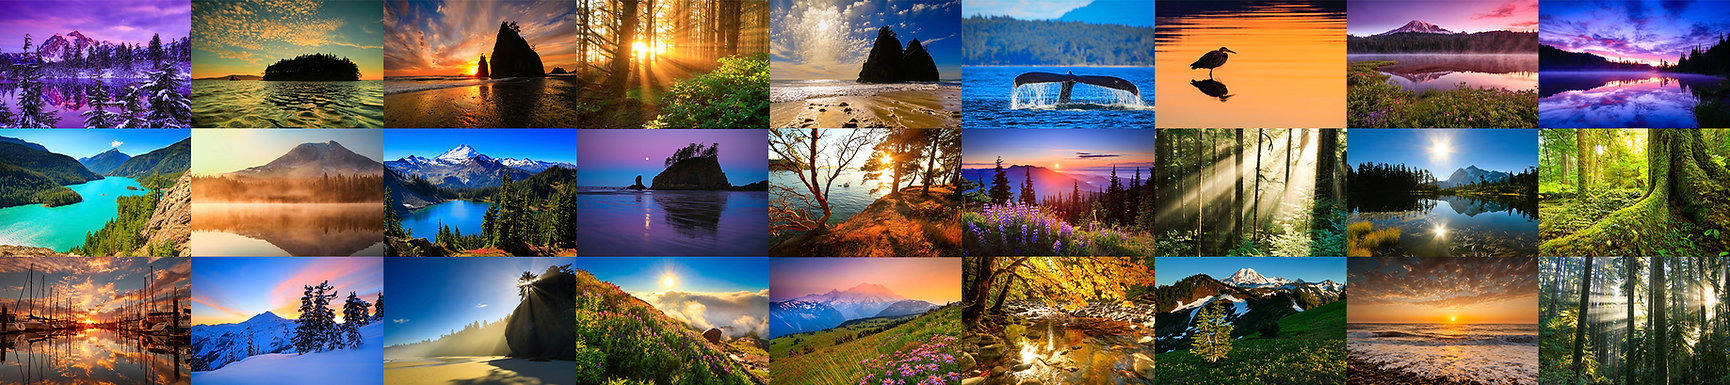 Pacific Northwest Fine Art Photography Collection